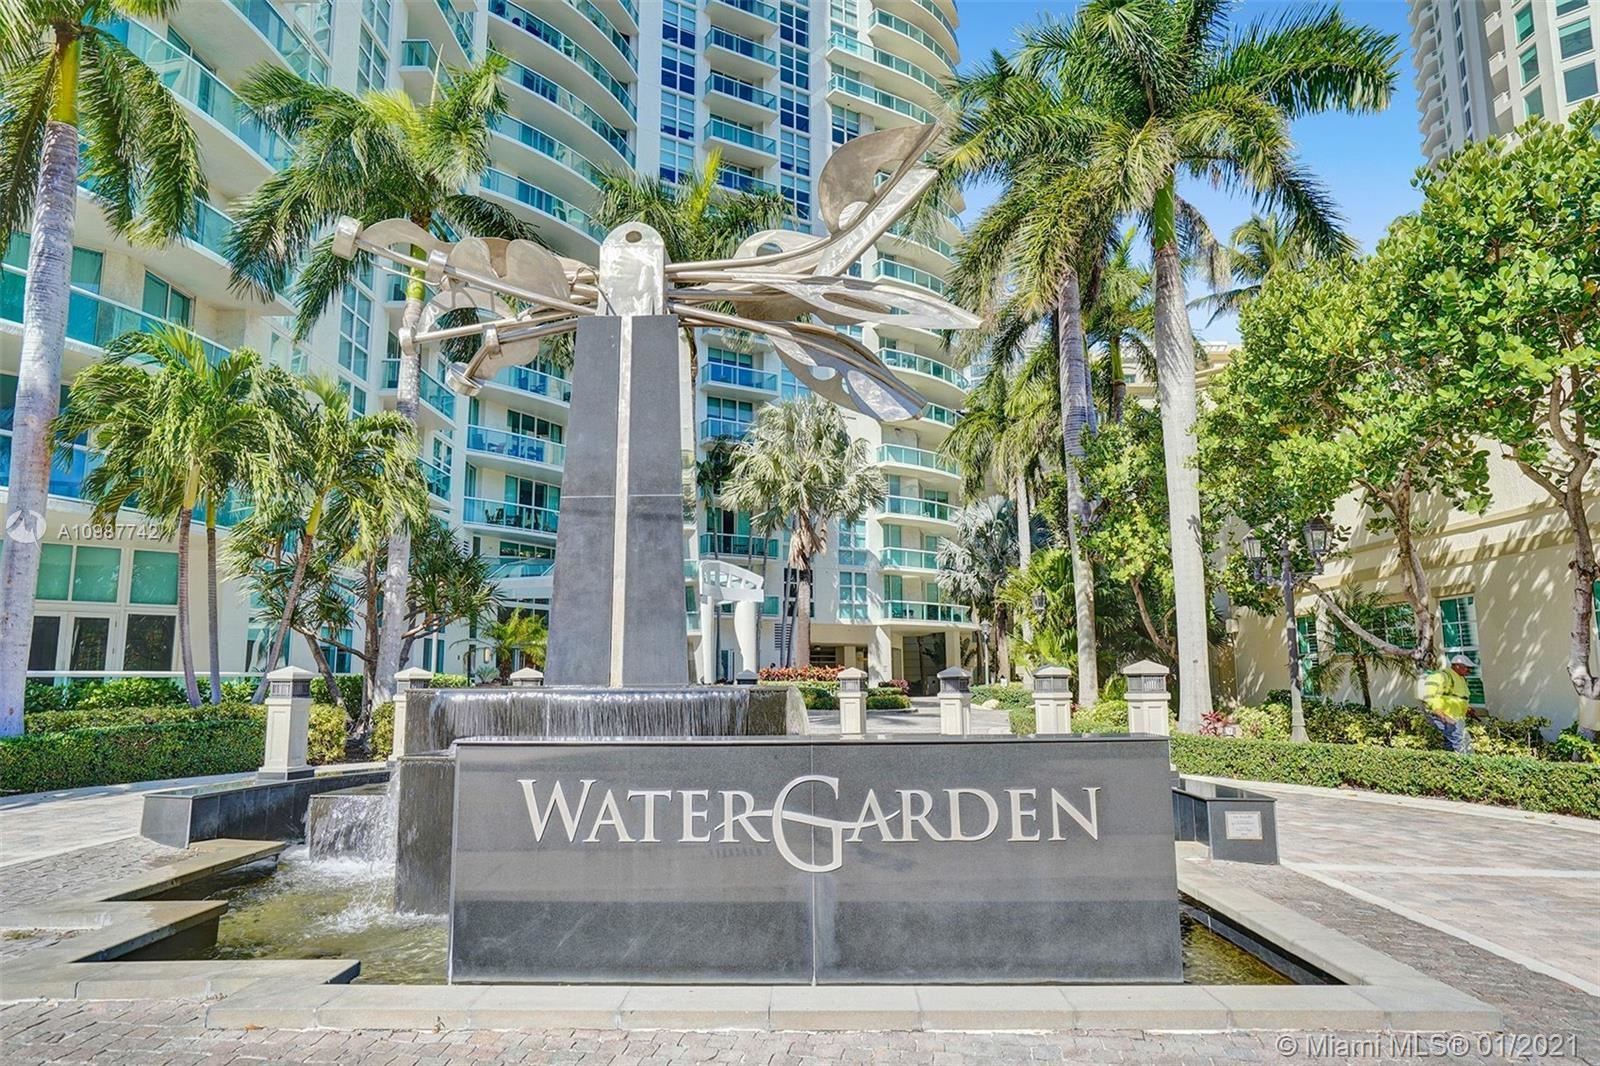 347 N New River Dr E #3107, Fort Lauderdale, FL 33301 - #: A10987742